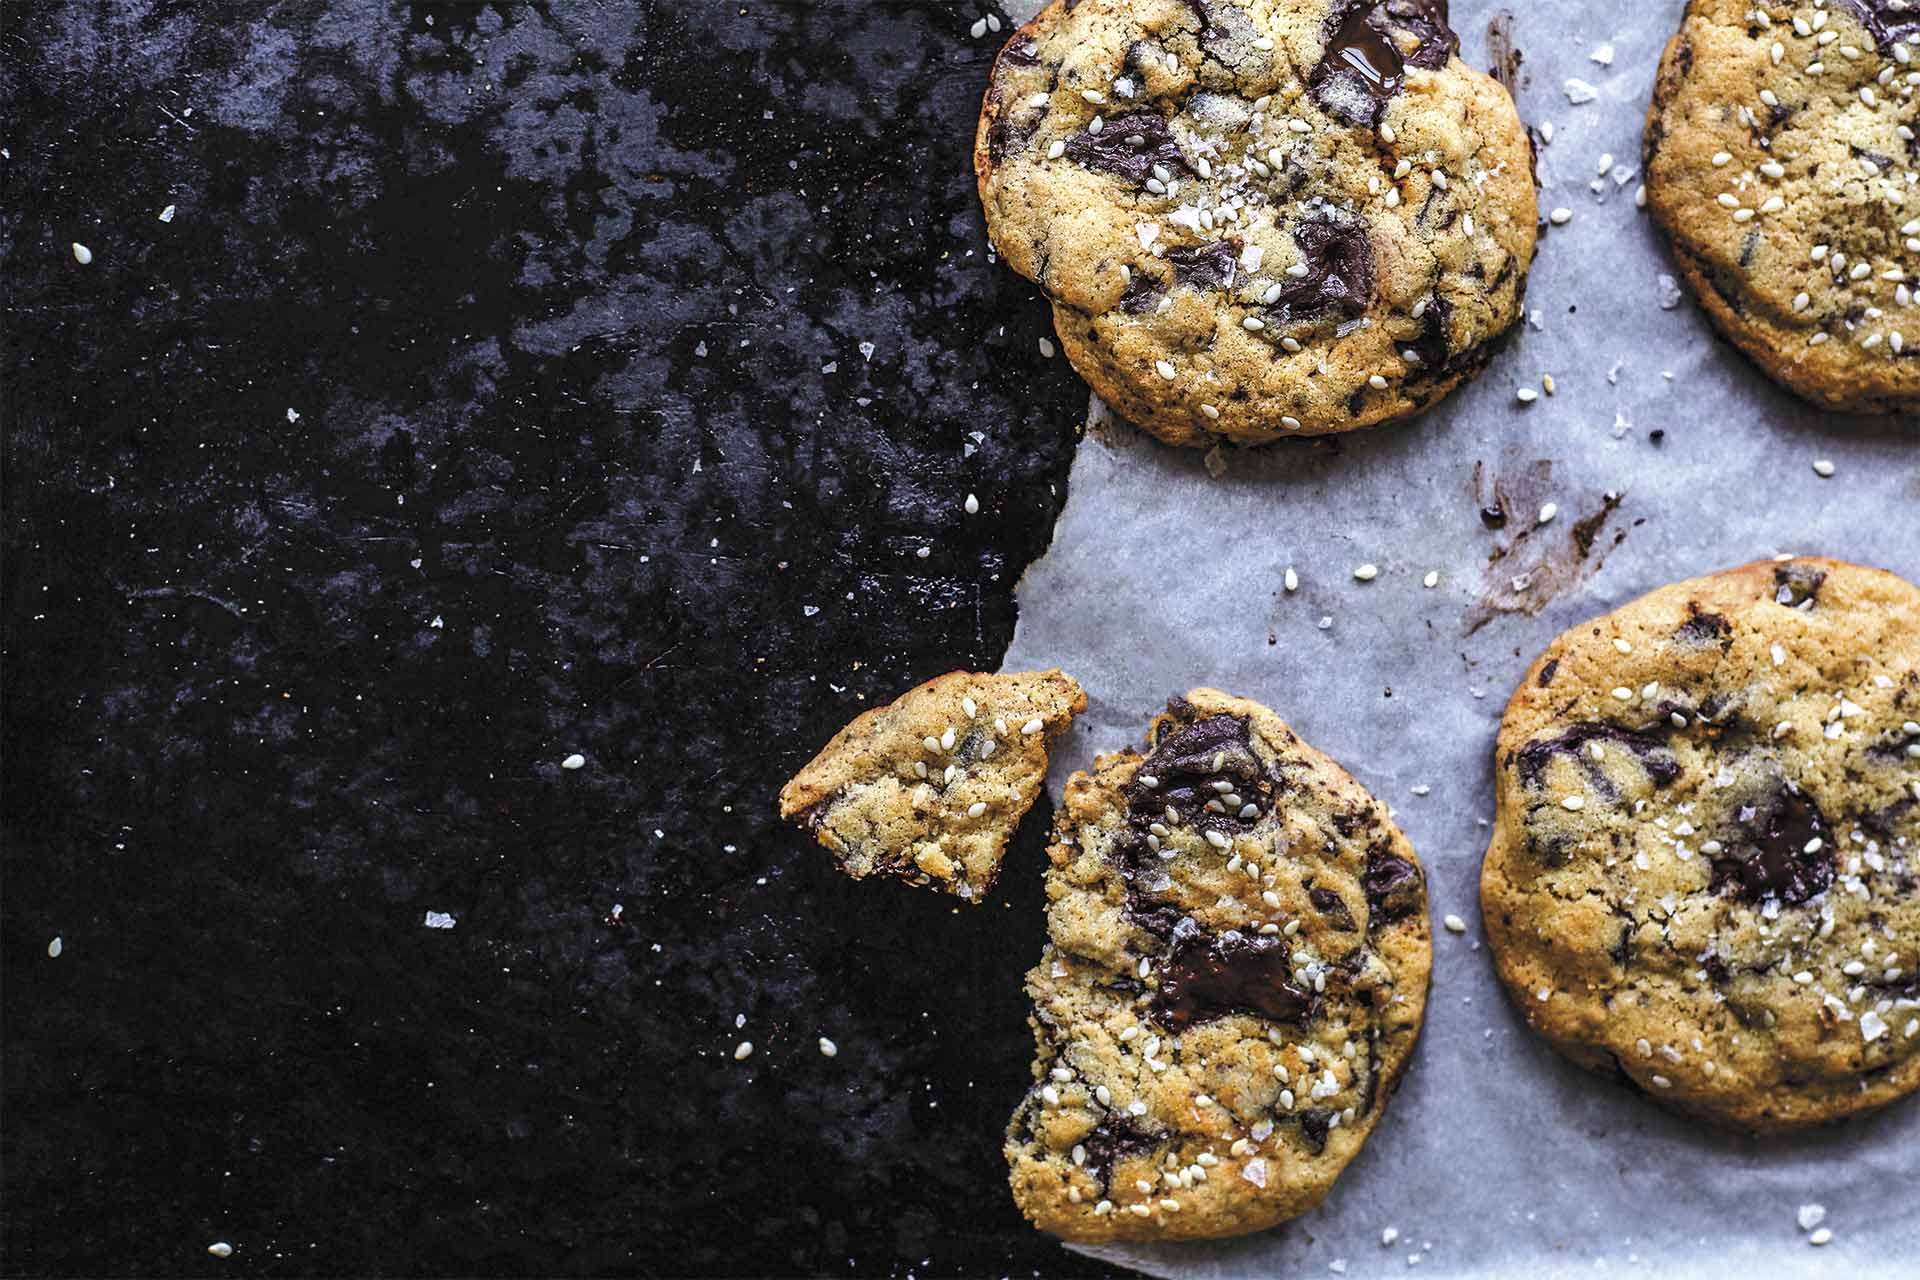 Tahini Choc Chip Cookies by Kathy Gunst